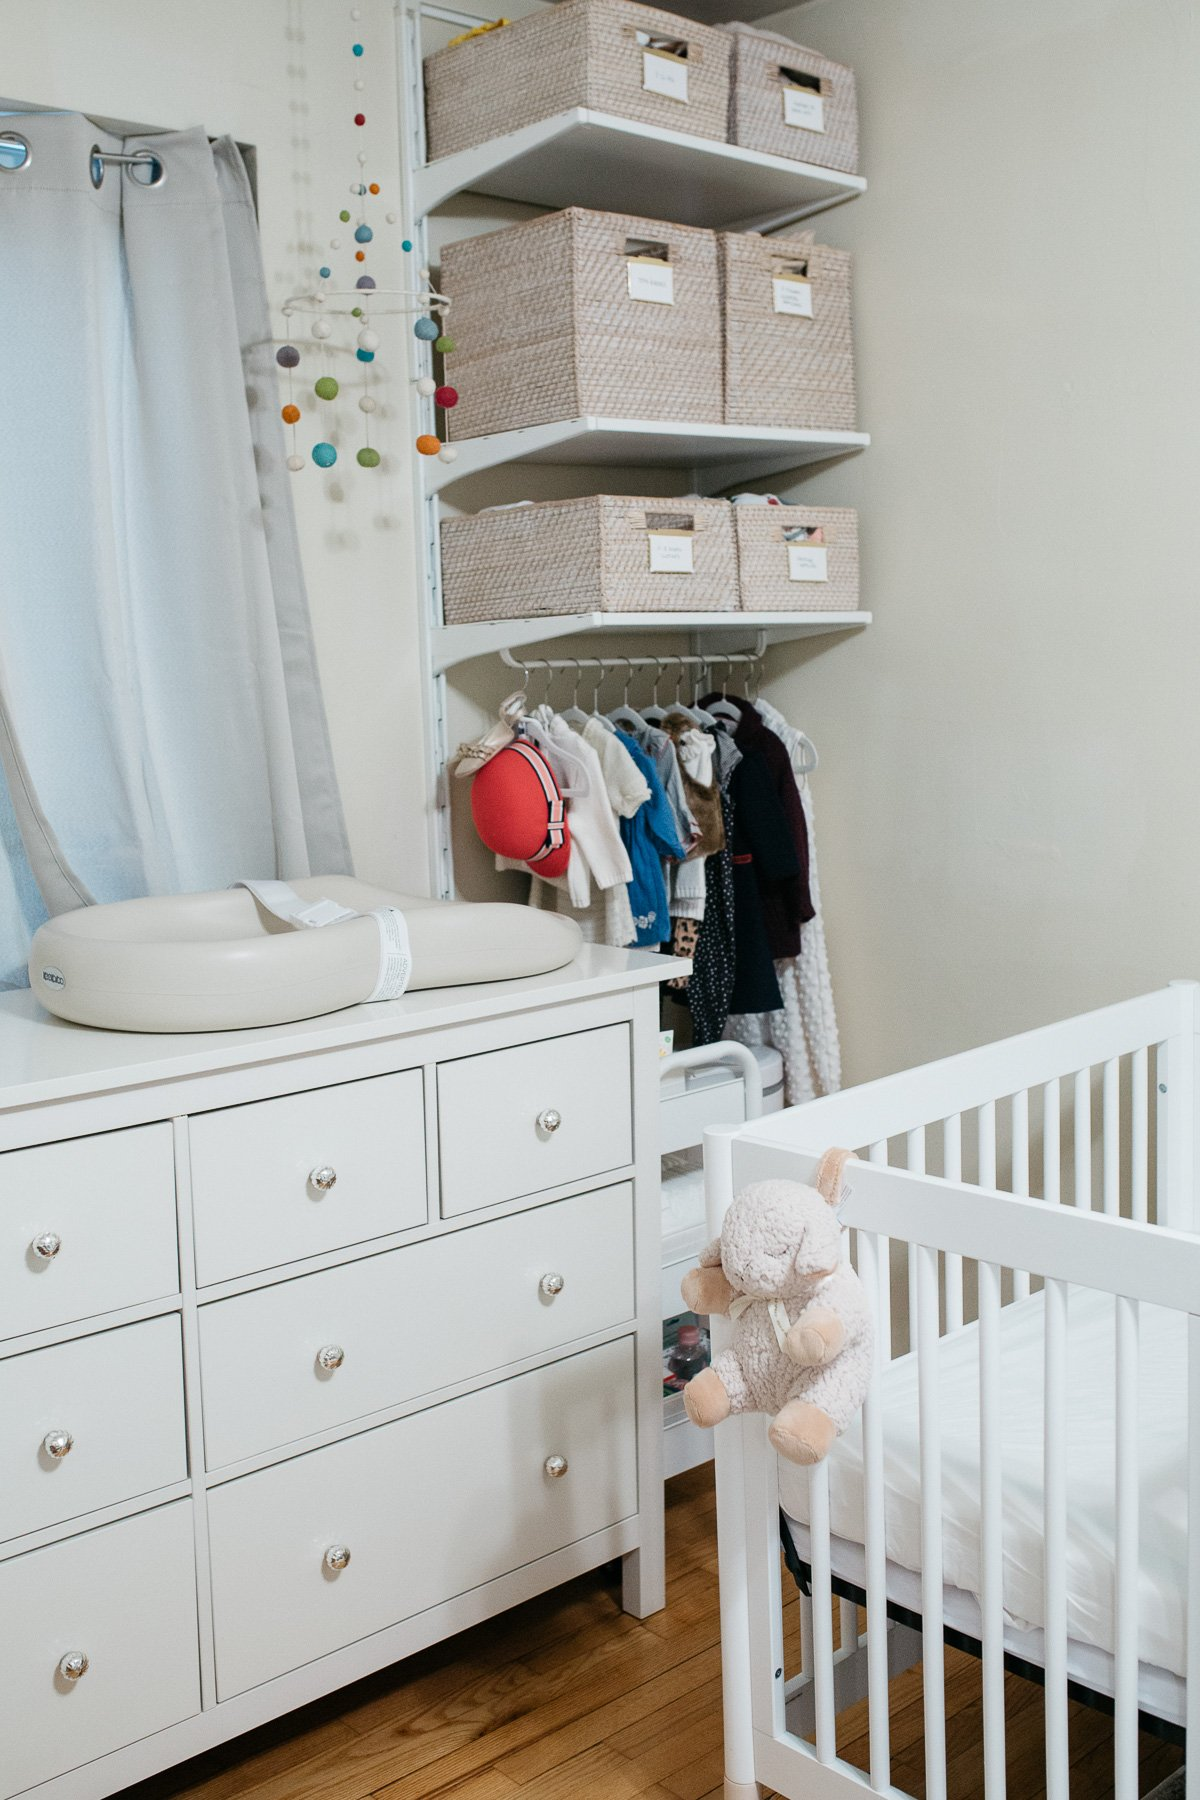 Top US lifestyle blogger, Wellesley & King, styles a tiny nursery in an apartment: small nursery ideas, small nursery organization, tiny nursery decor, tiny nursery ideas, tiny nursery organization